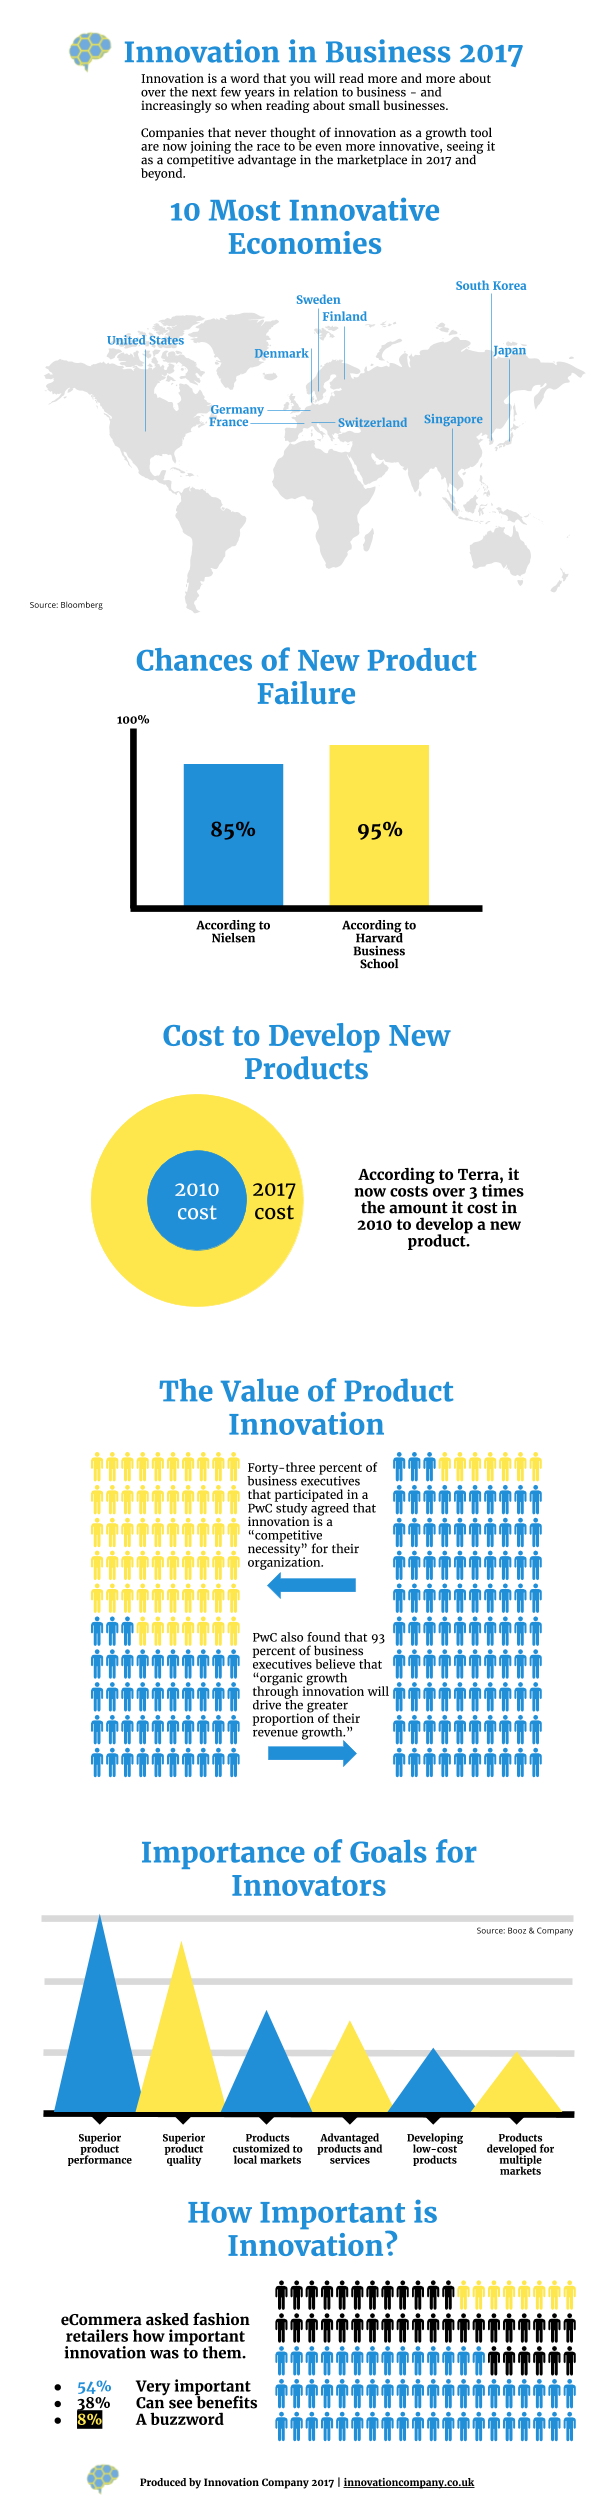 Innovation in Business 2017 #infographic